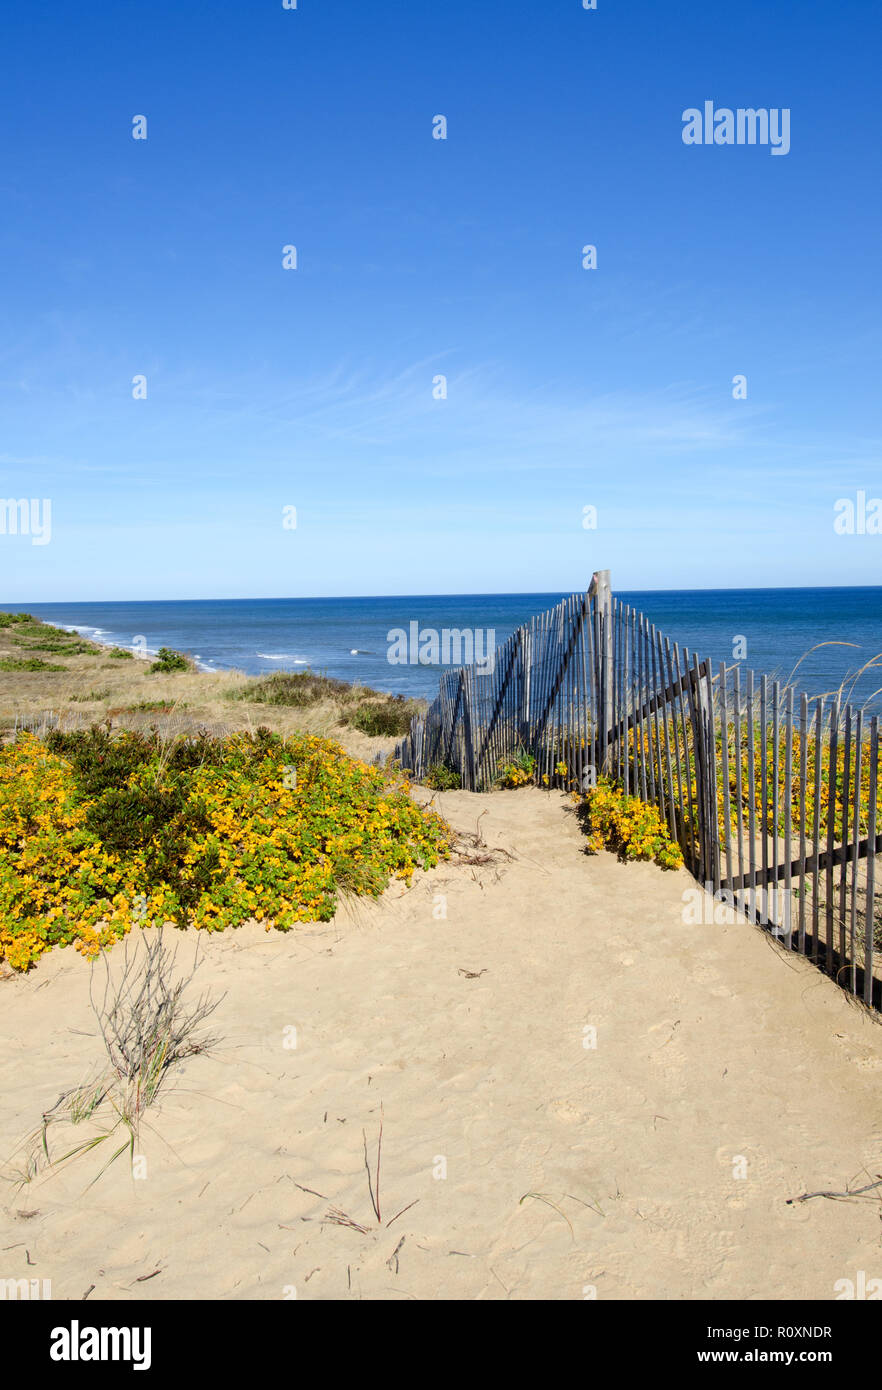 Scenic view at Marconi Station on the Cape Cod National Seashore in Wellfleet, Massachusetts with dunes, ocean and a clear, blue sky - Stock Image